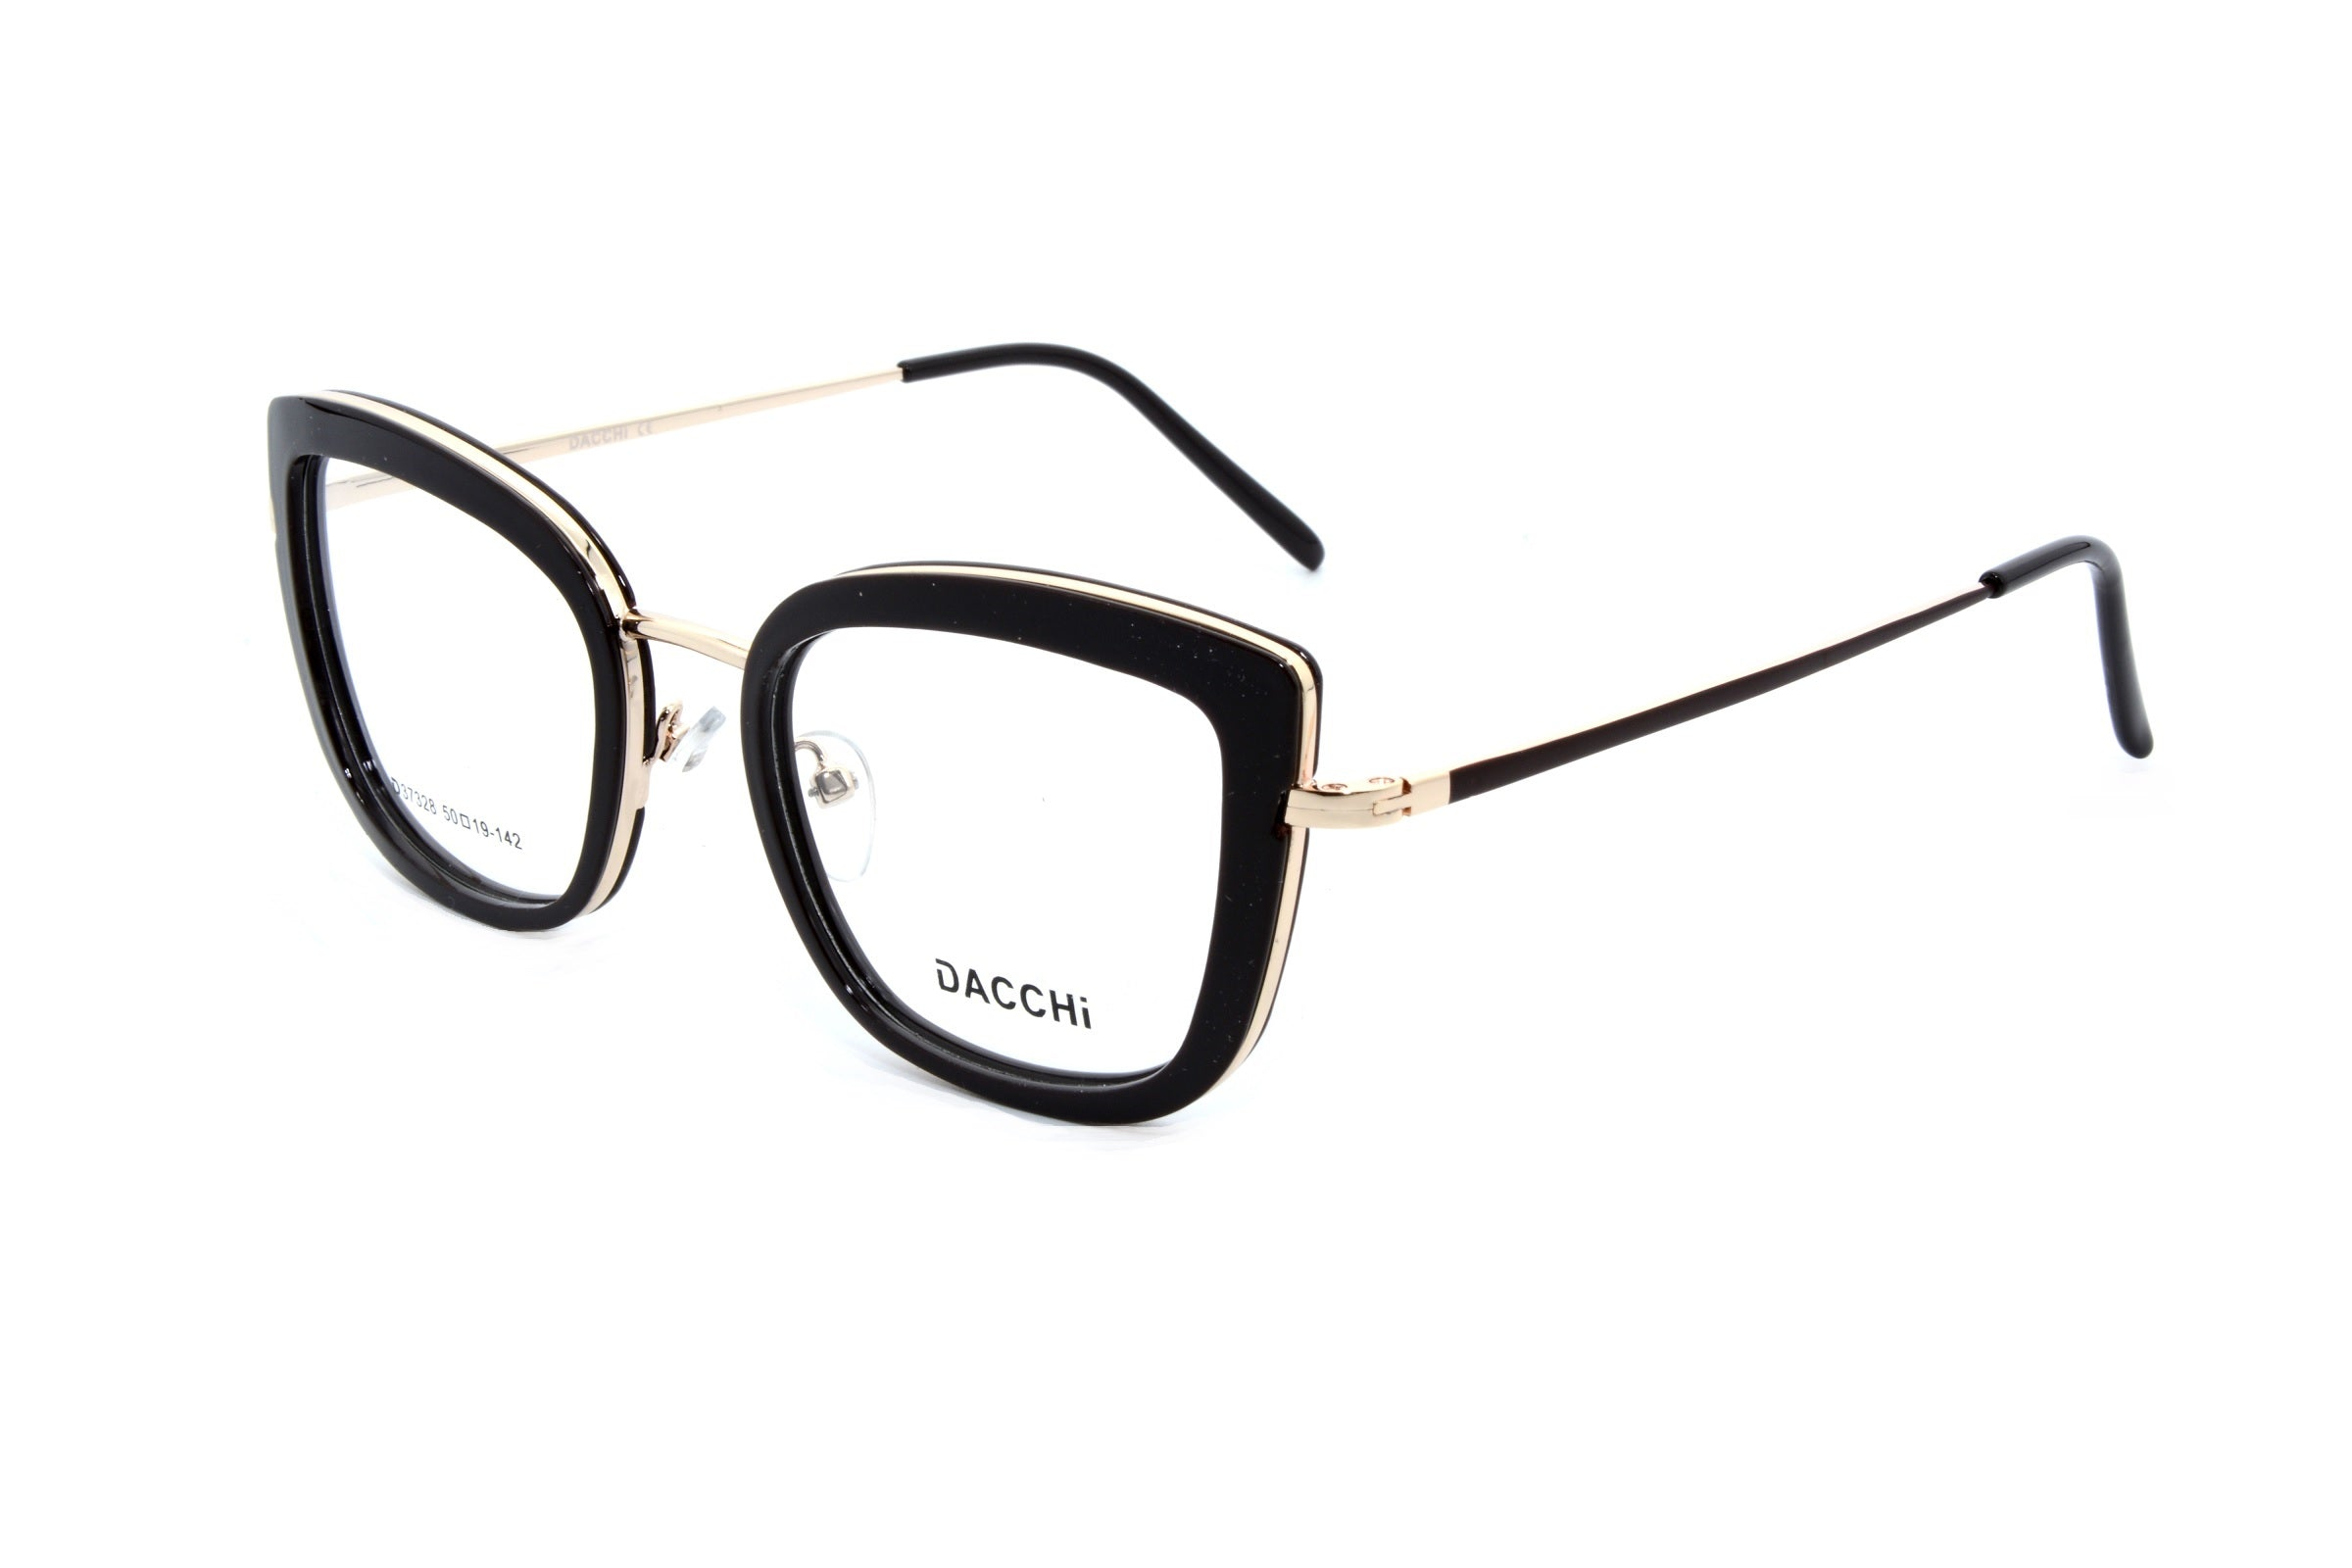 Dacchi eyewear 37328, C2 - Optics Trading